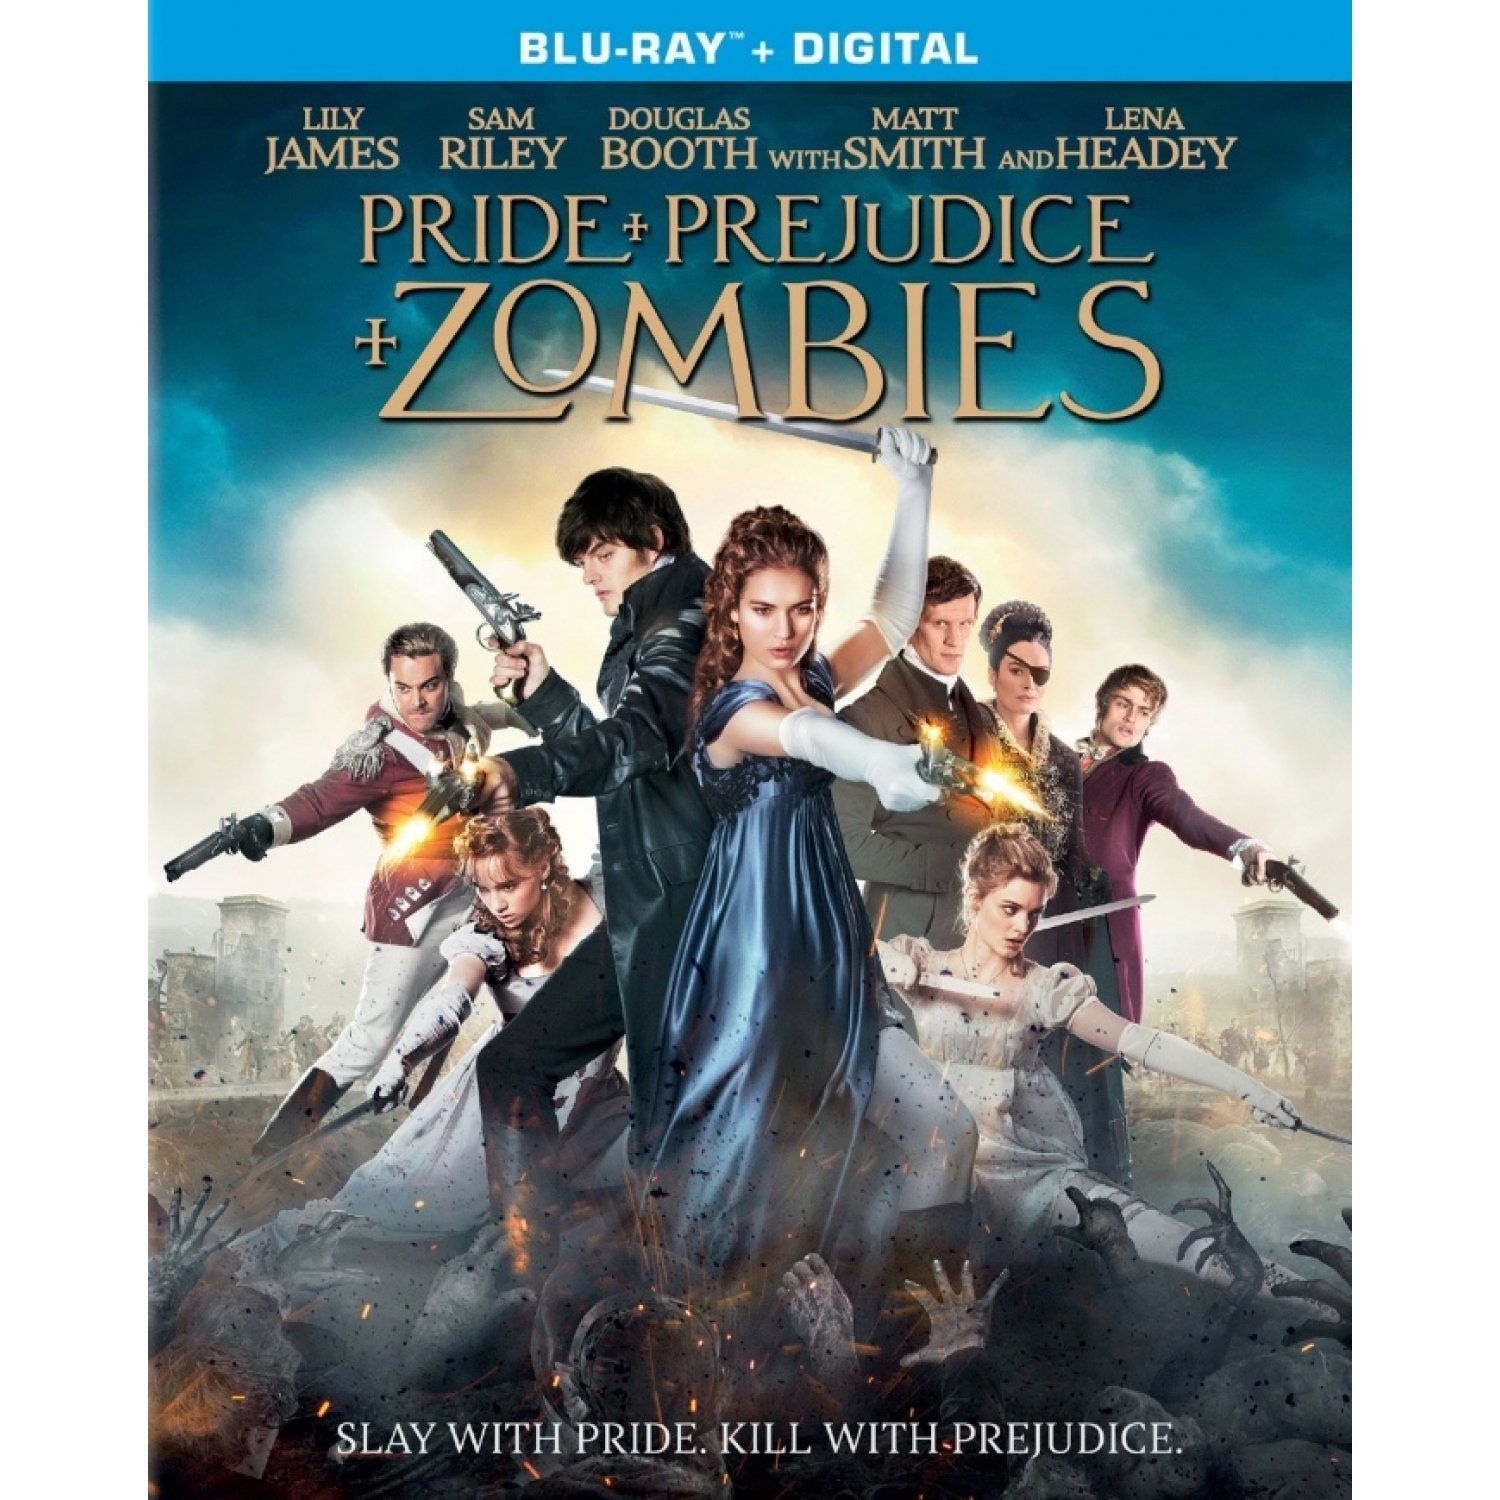 Watch Pride and Prejudice and Zombies | Movie & TV Shows Putlocker